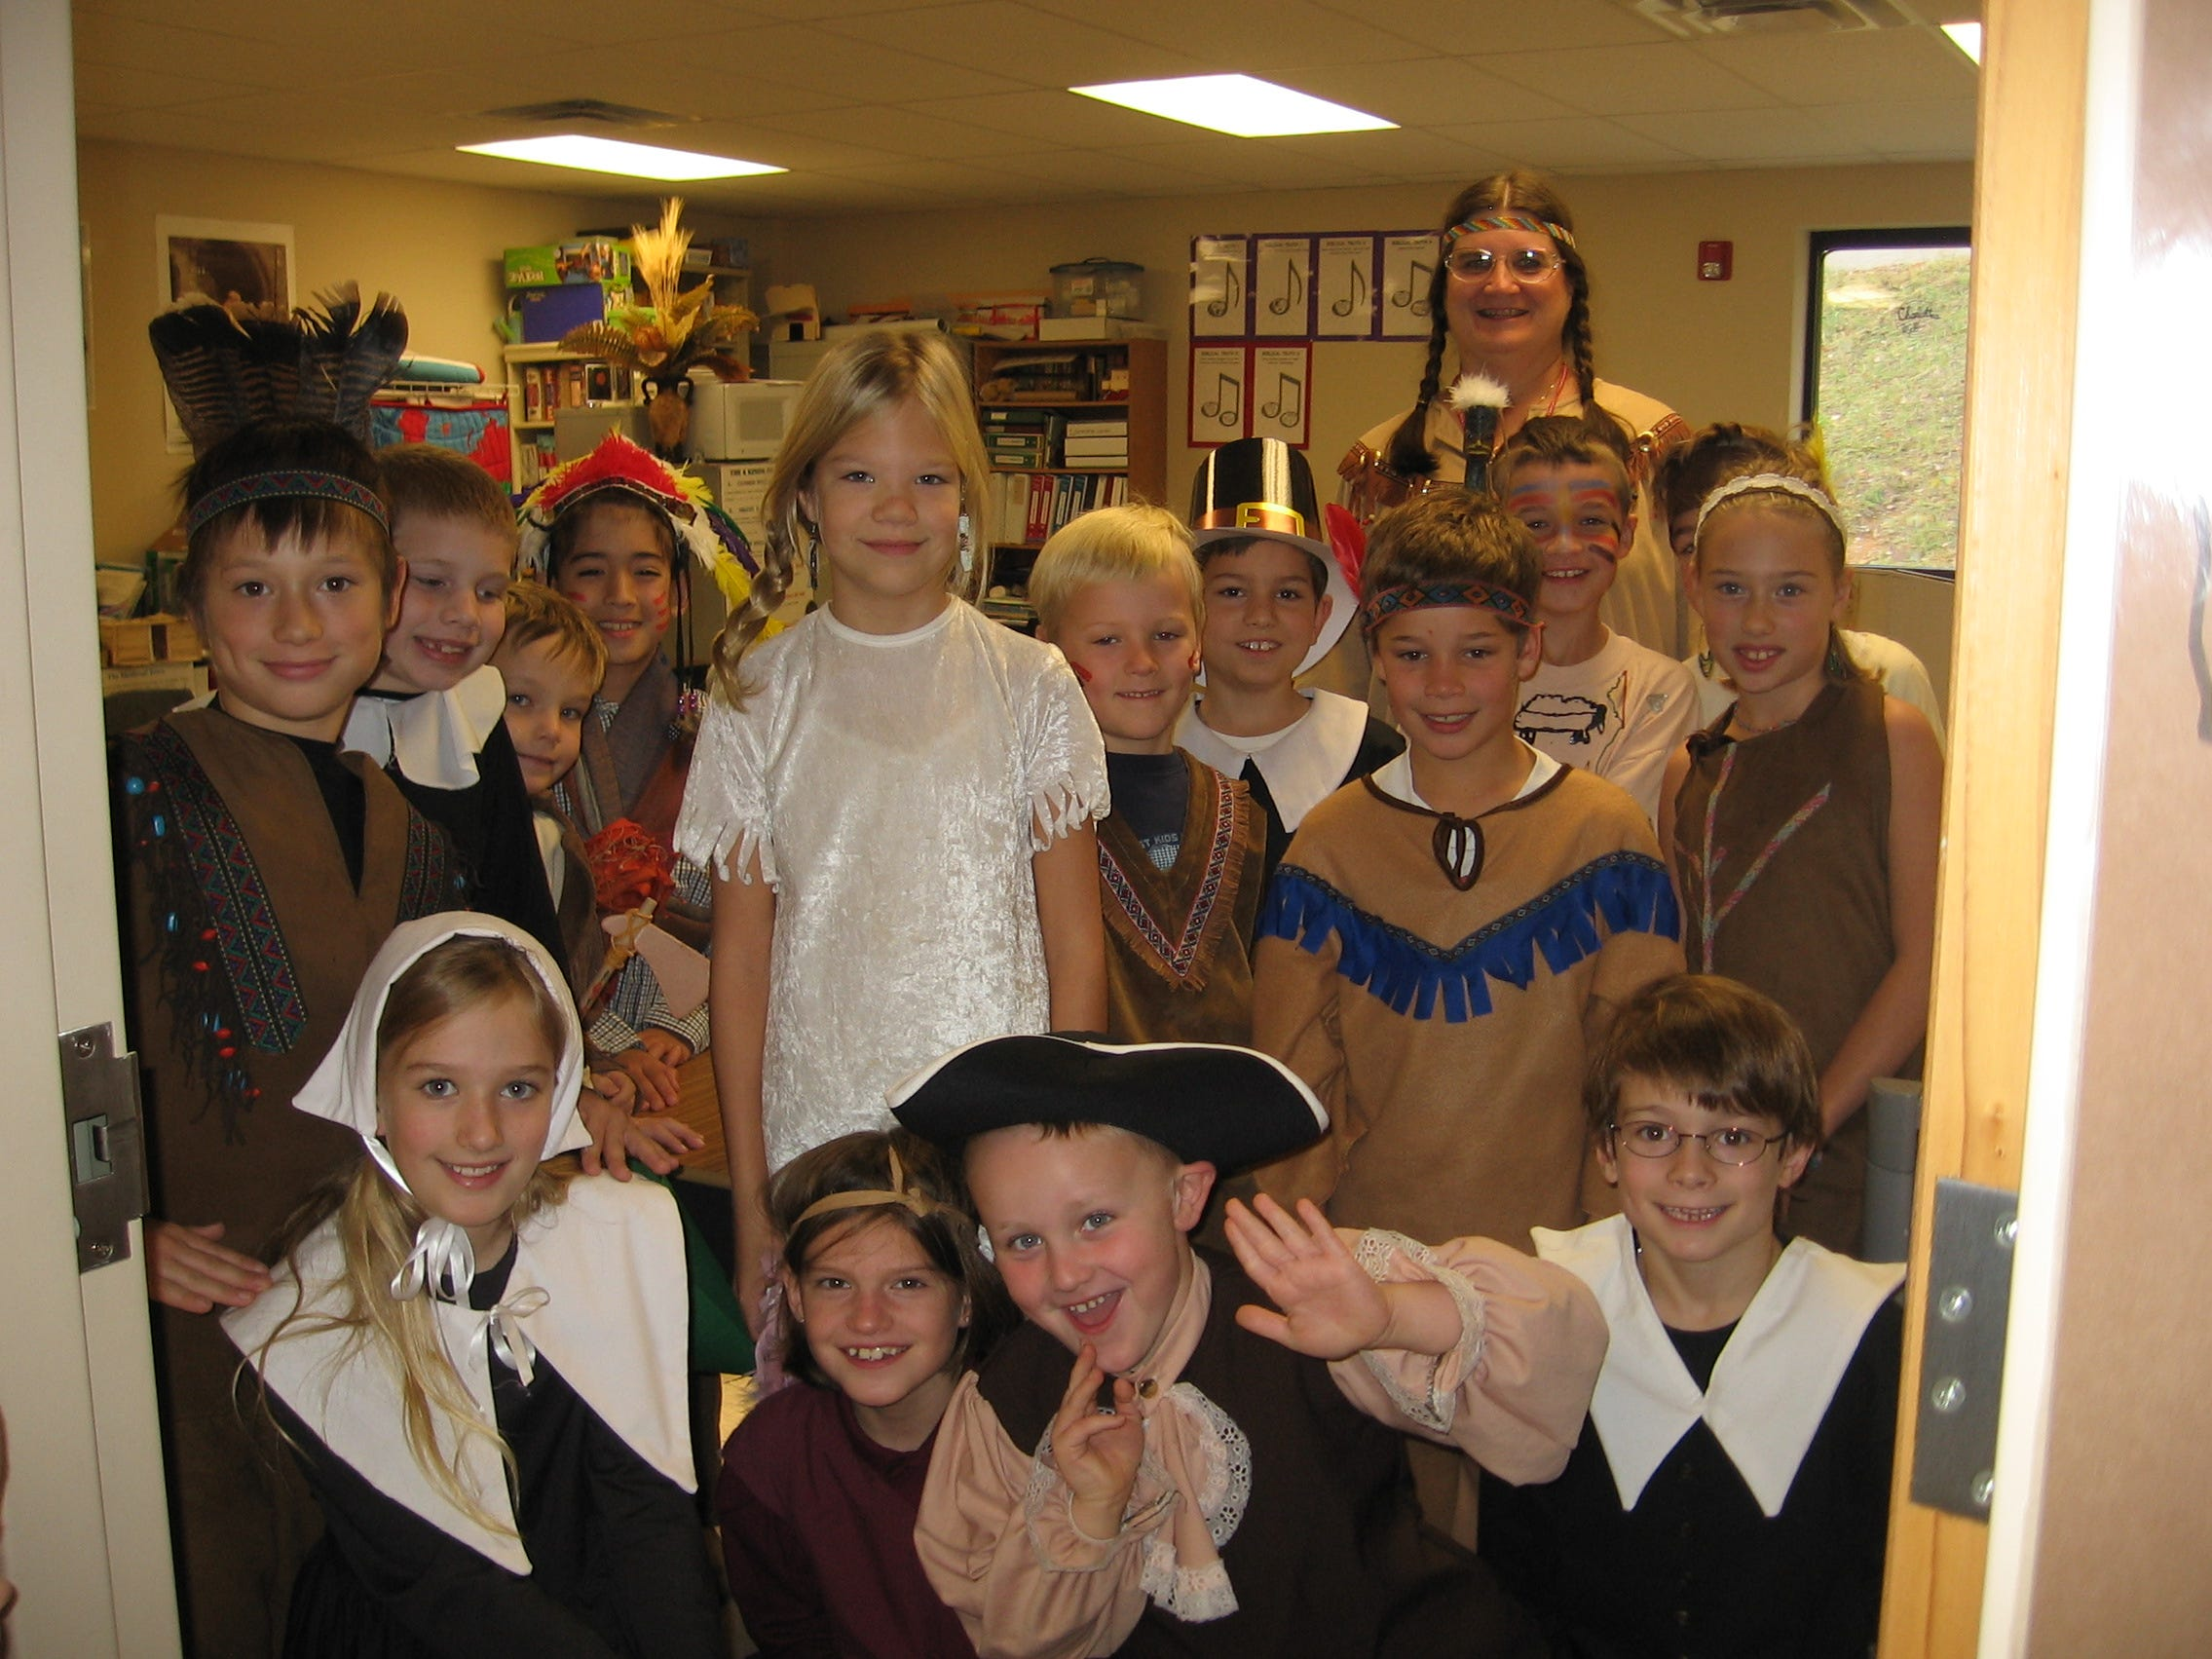 Paideia Academy students dressed up as pilgrims and Indians to celebrate Thanksgiving at a school event  Nov. 19